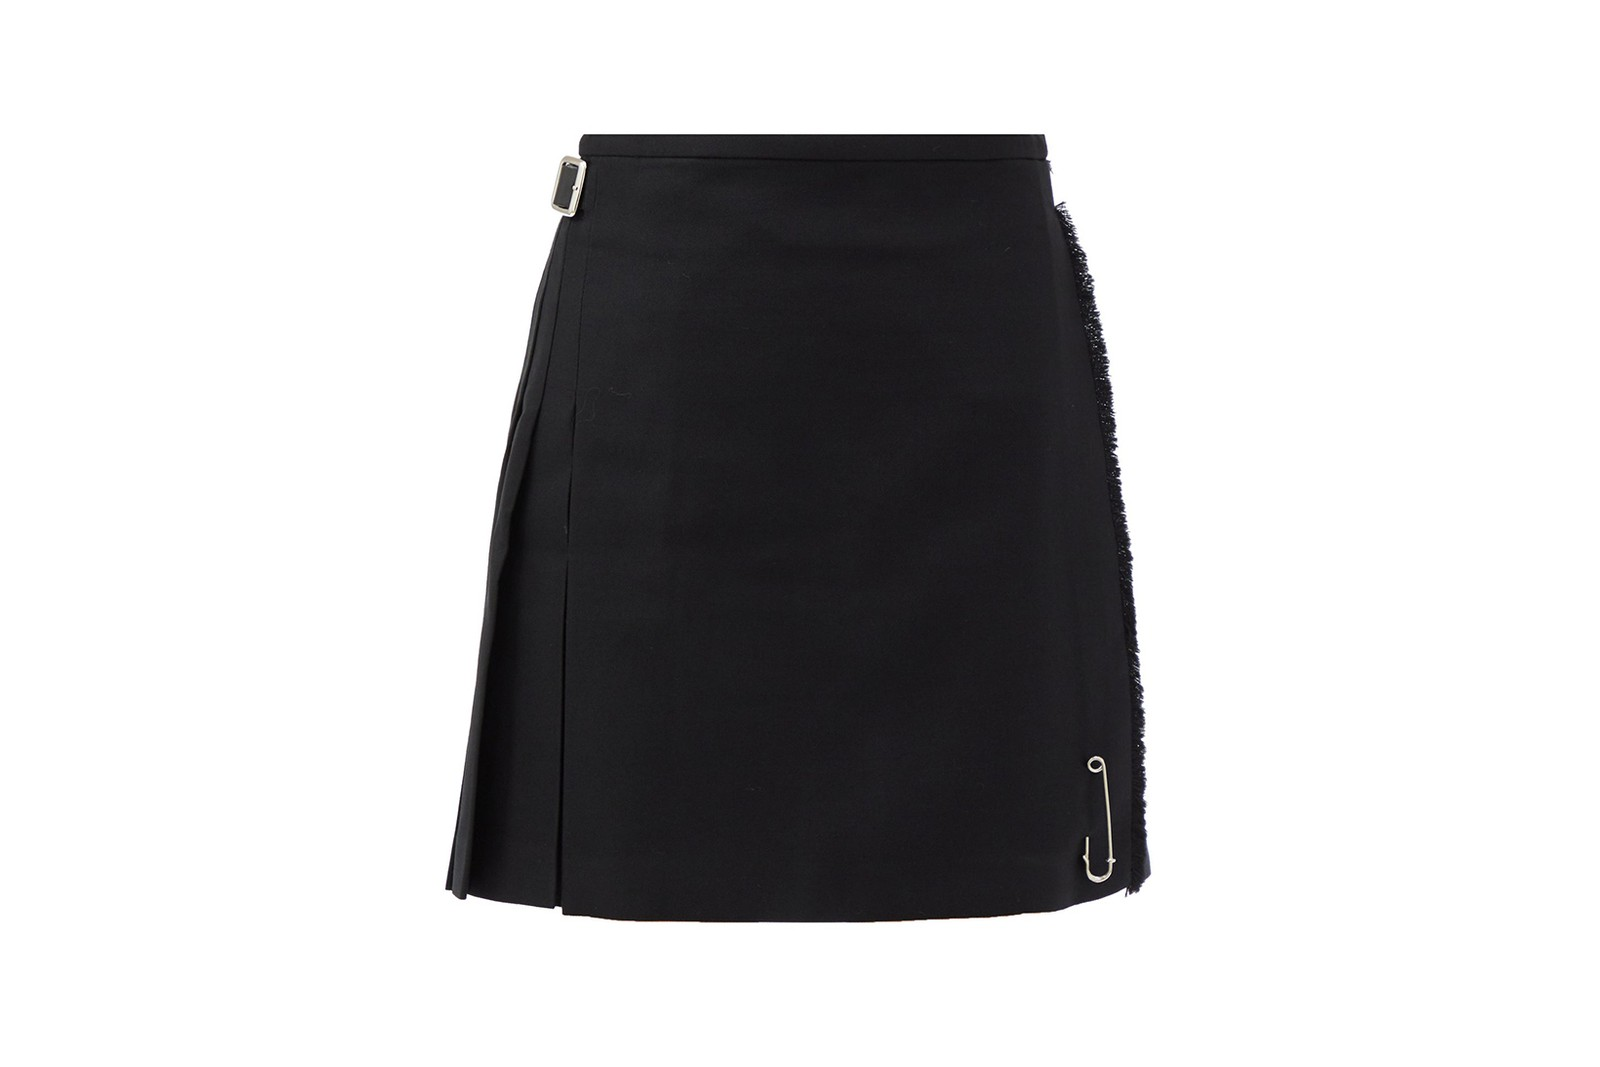 best mini kilt skirts 90s trend naomi campbell kate moss clueless alicia silverstone stacey dash plaid